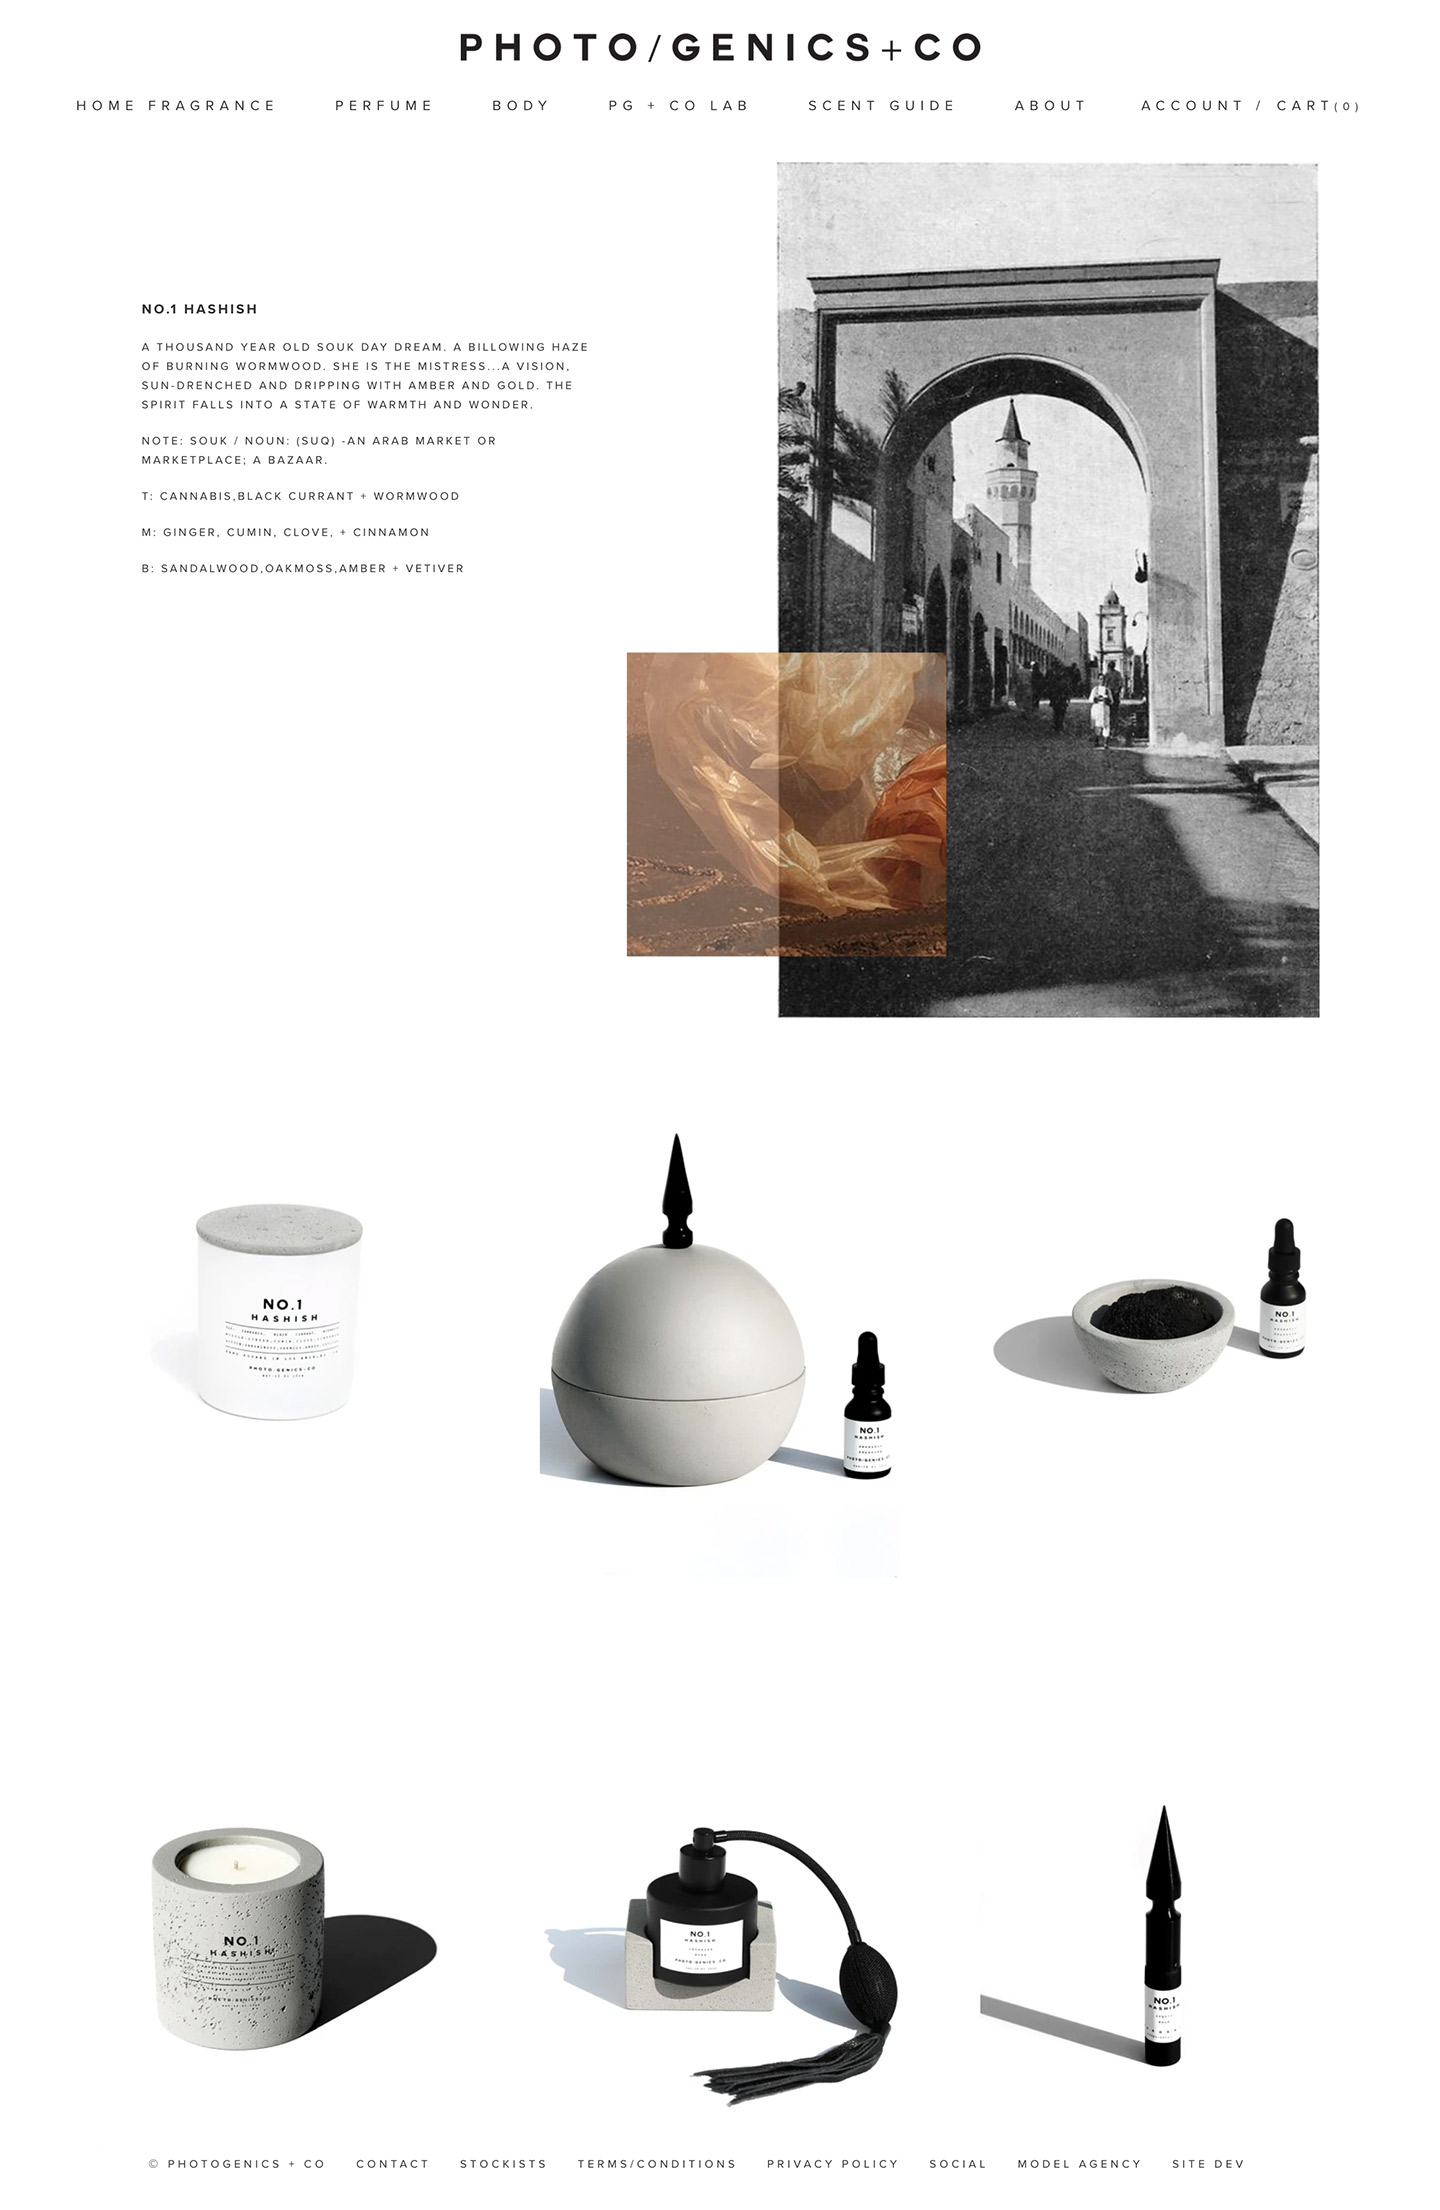 Schuler - Portfolio - Photogenics + CO - Single Product Page Mockup